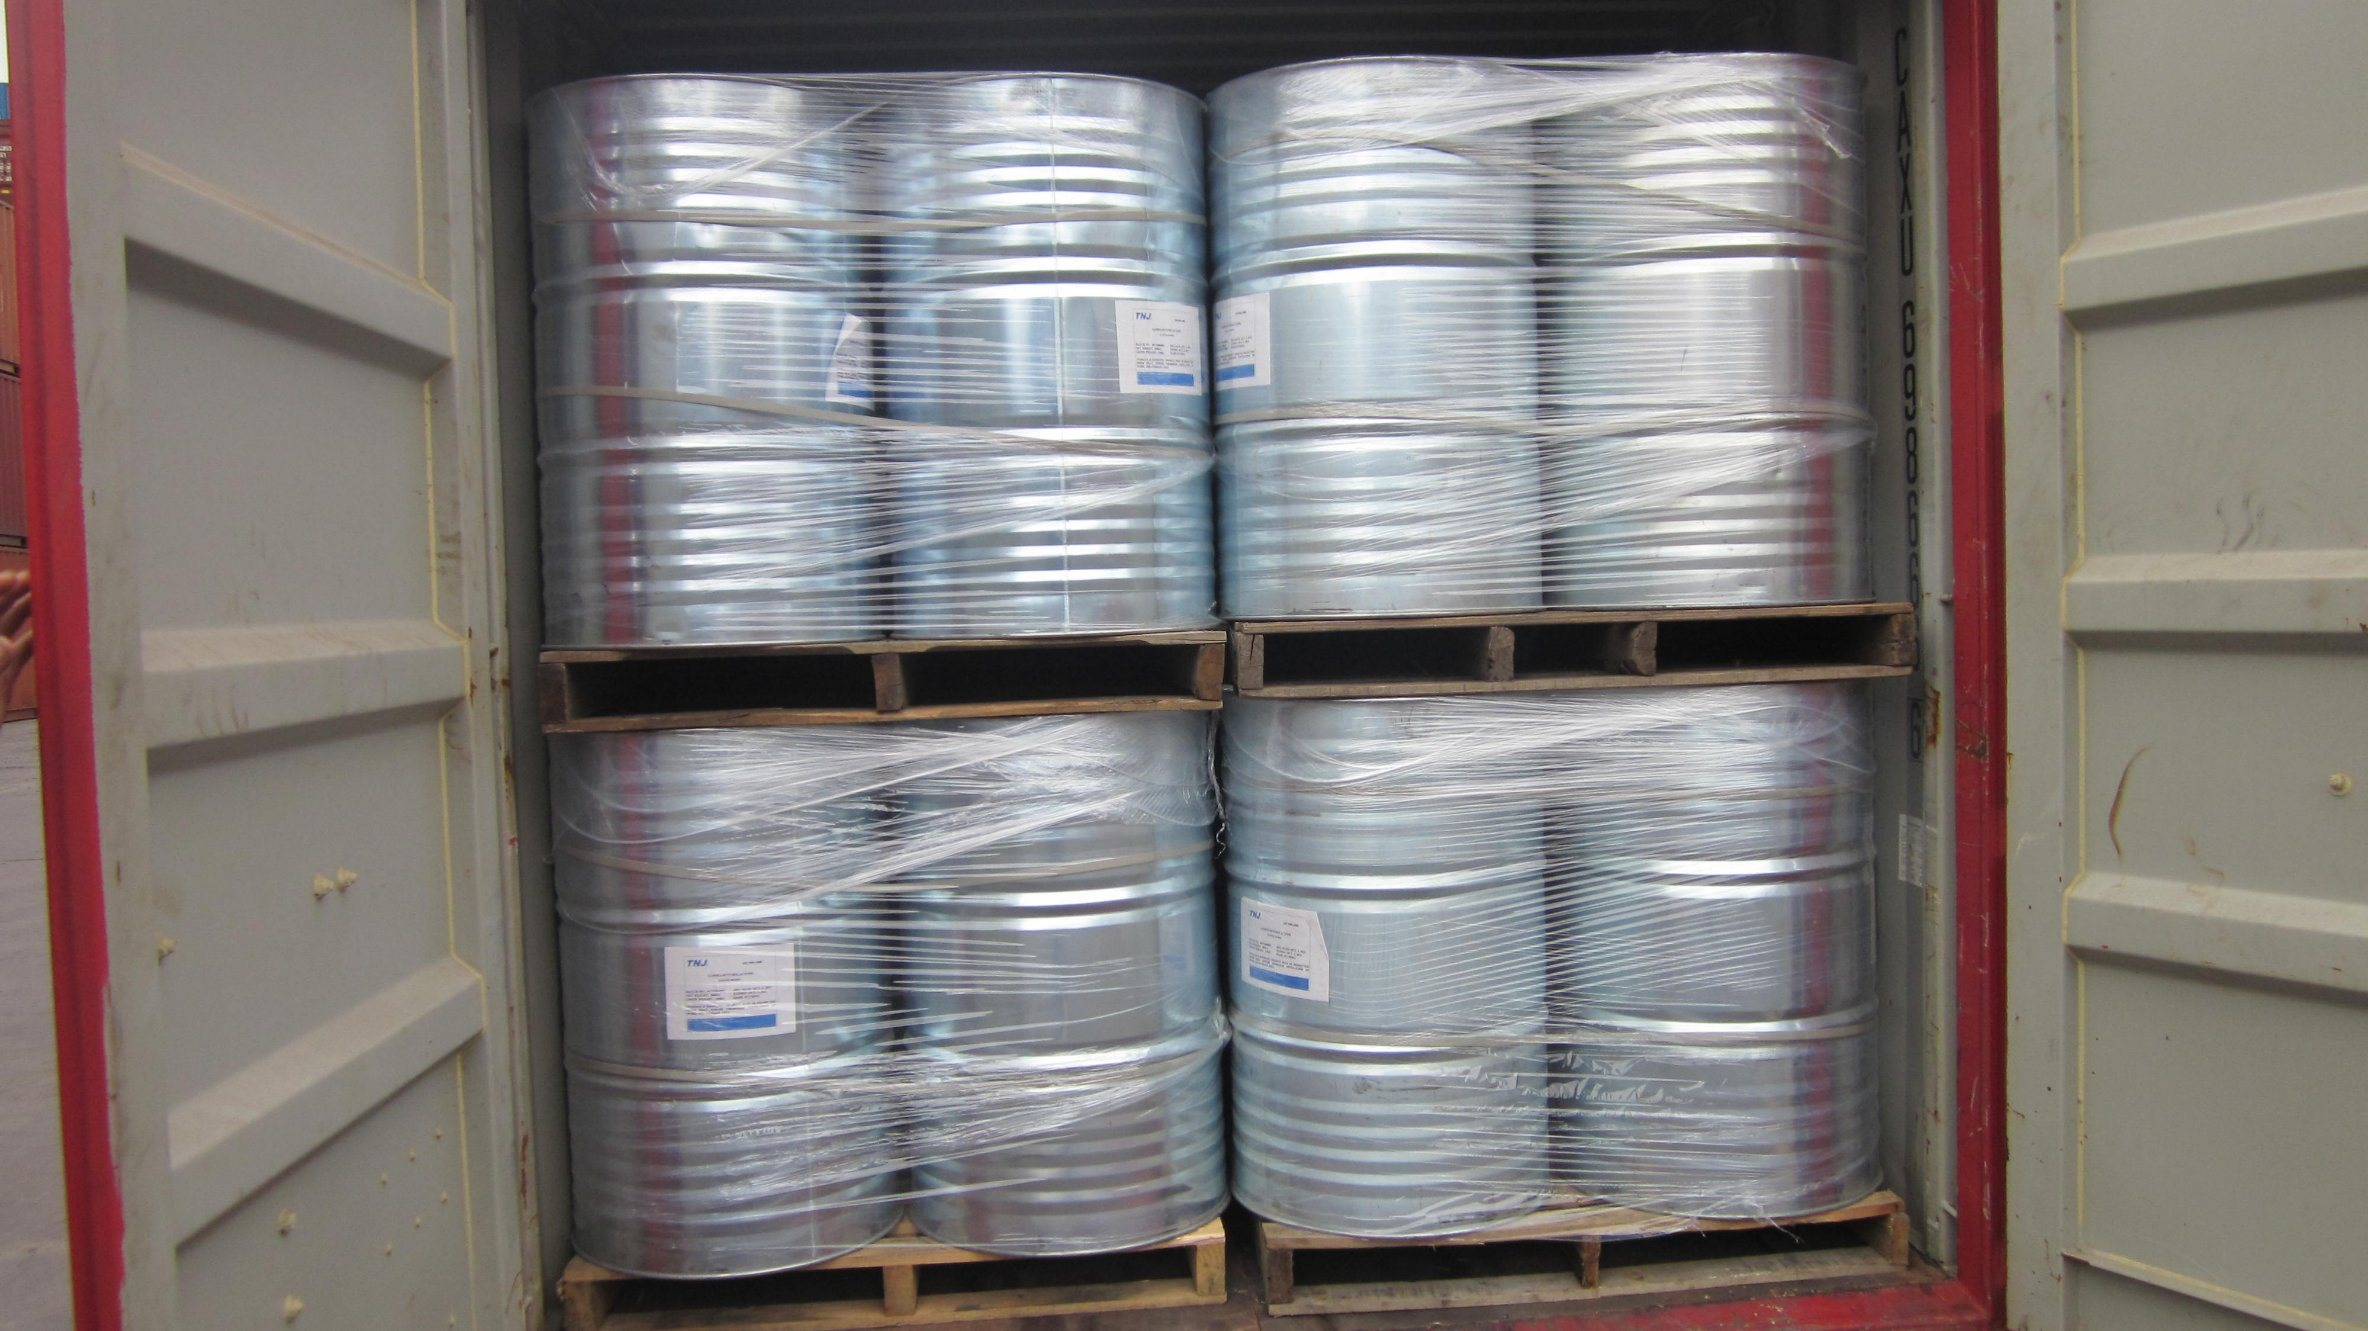 Buy Propylene Glycol Monomethyl Ether (PM) CAS 107-98-2 at Best Factory Price